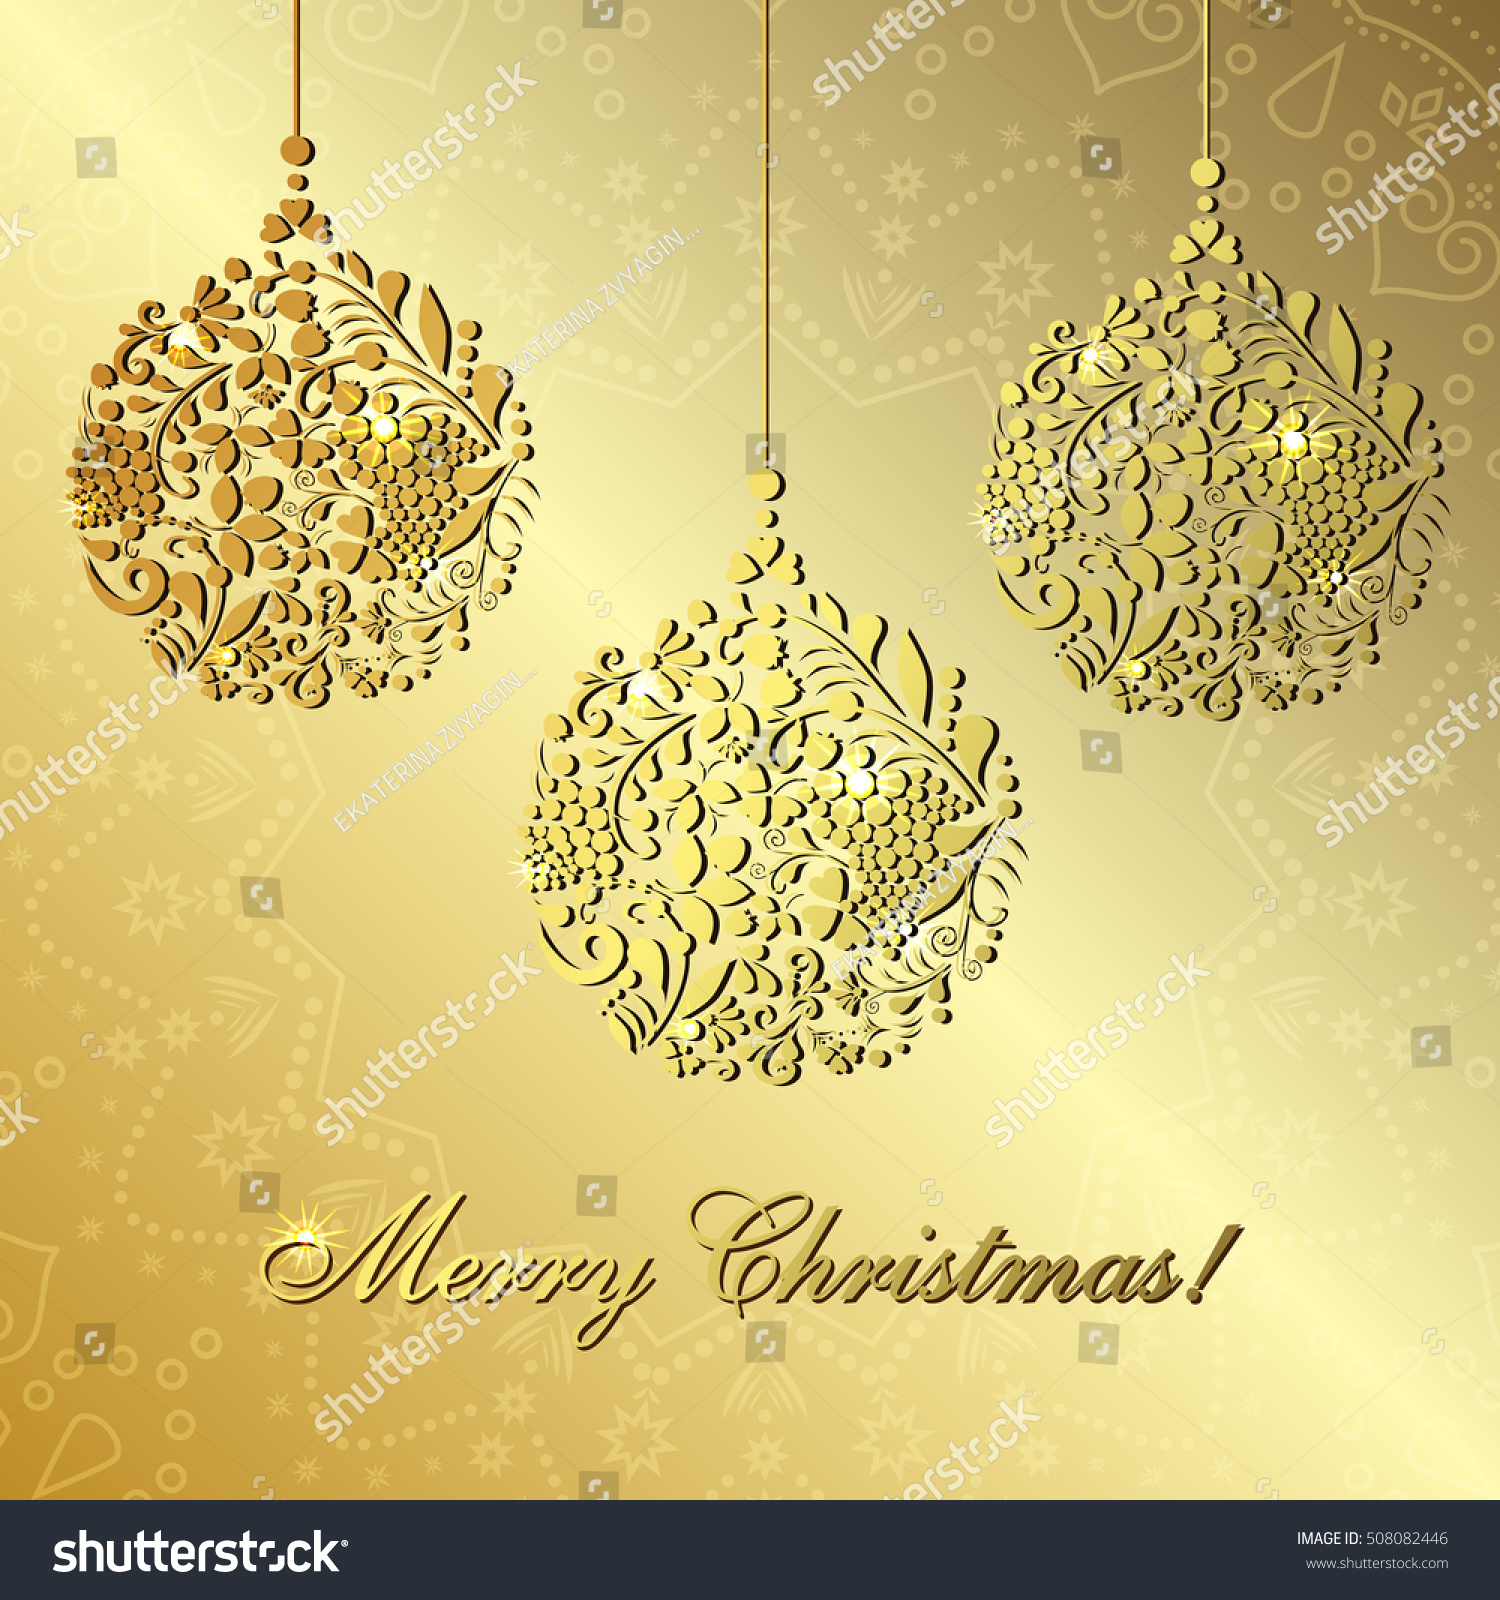 Greeting New Year Christmas Card Ornaments Stock Illustration